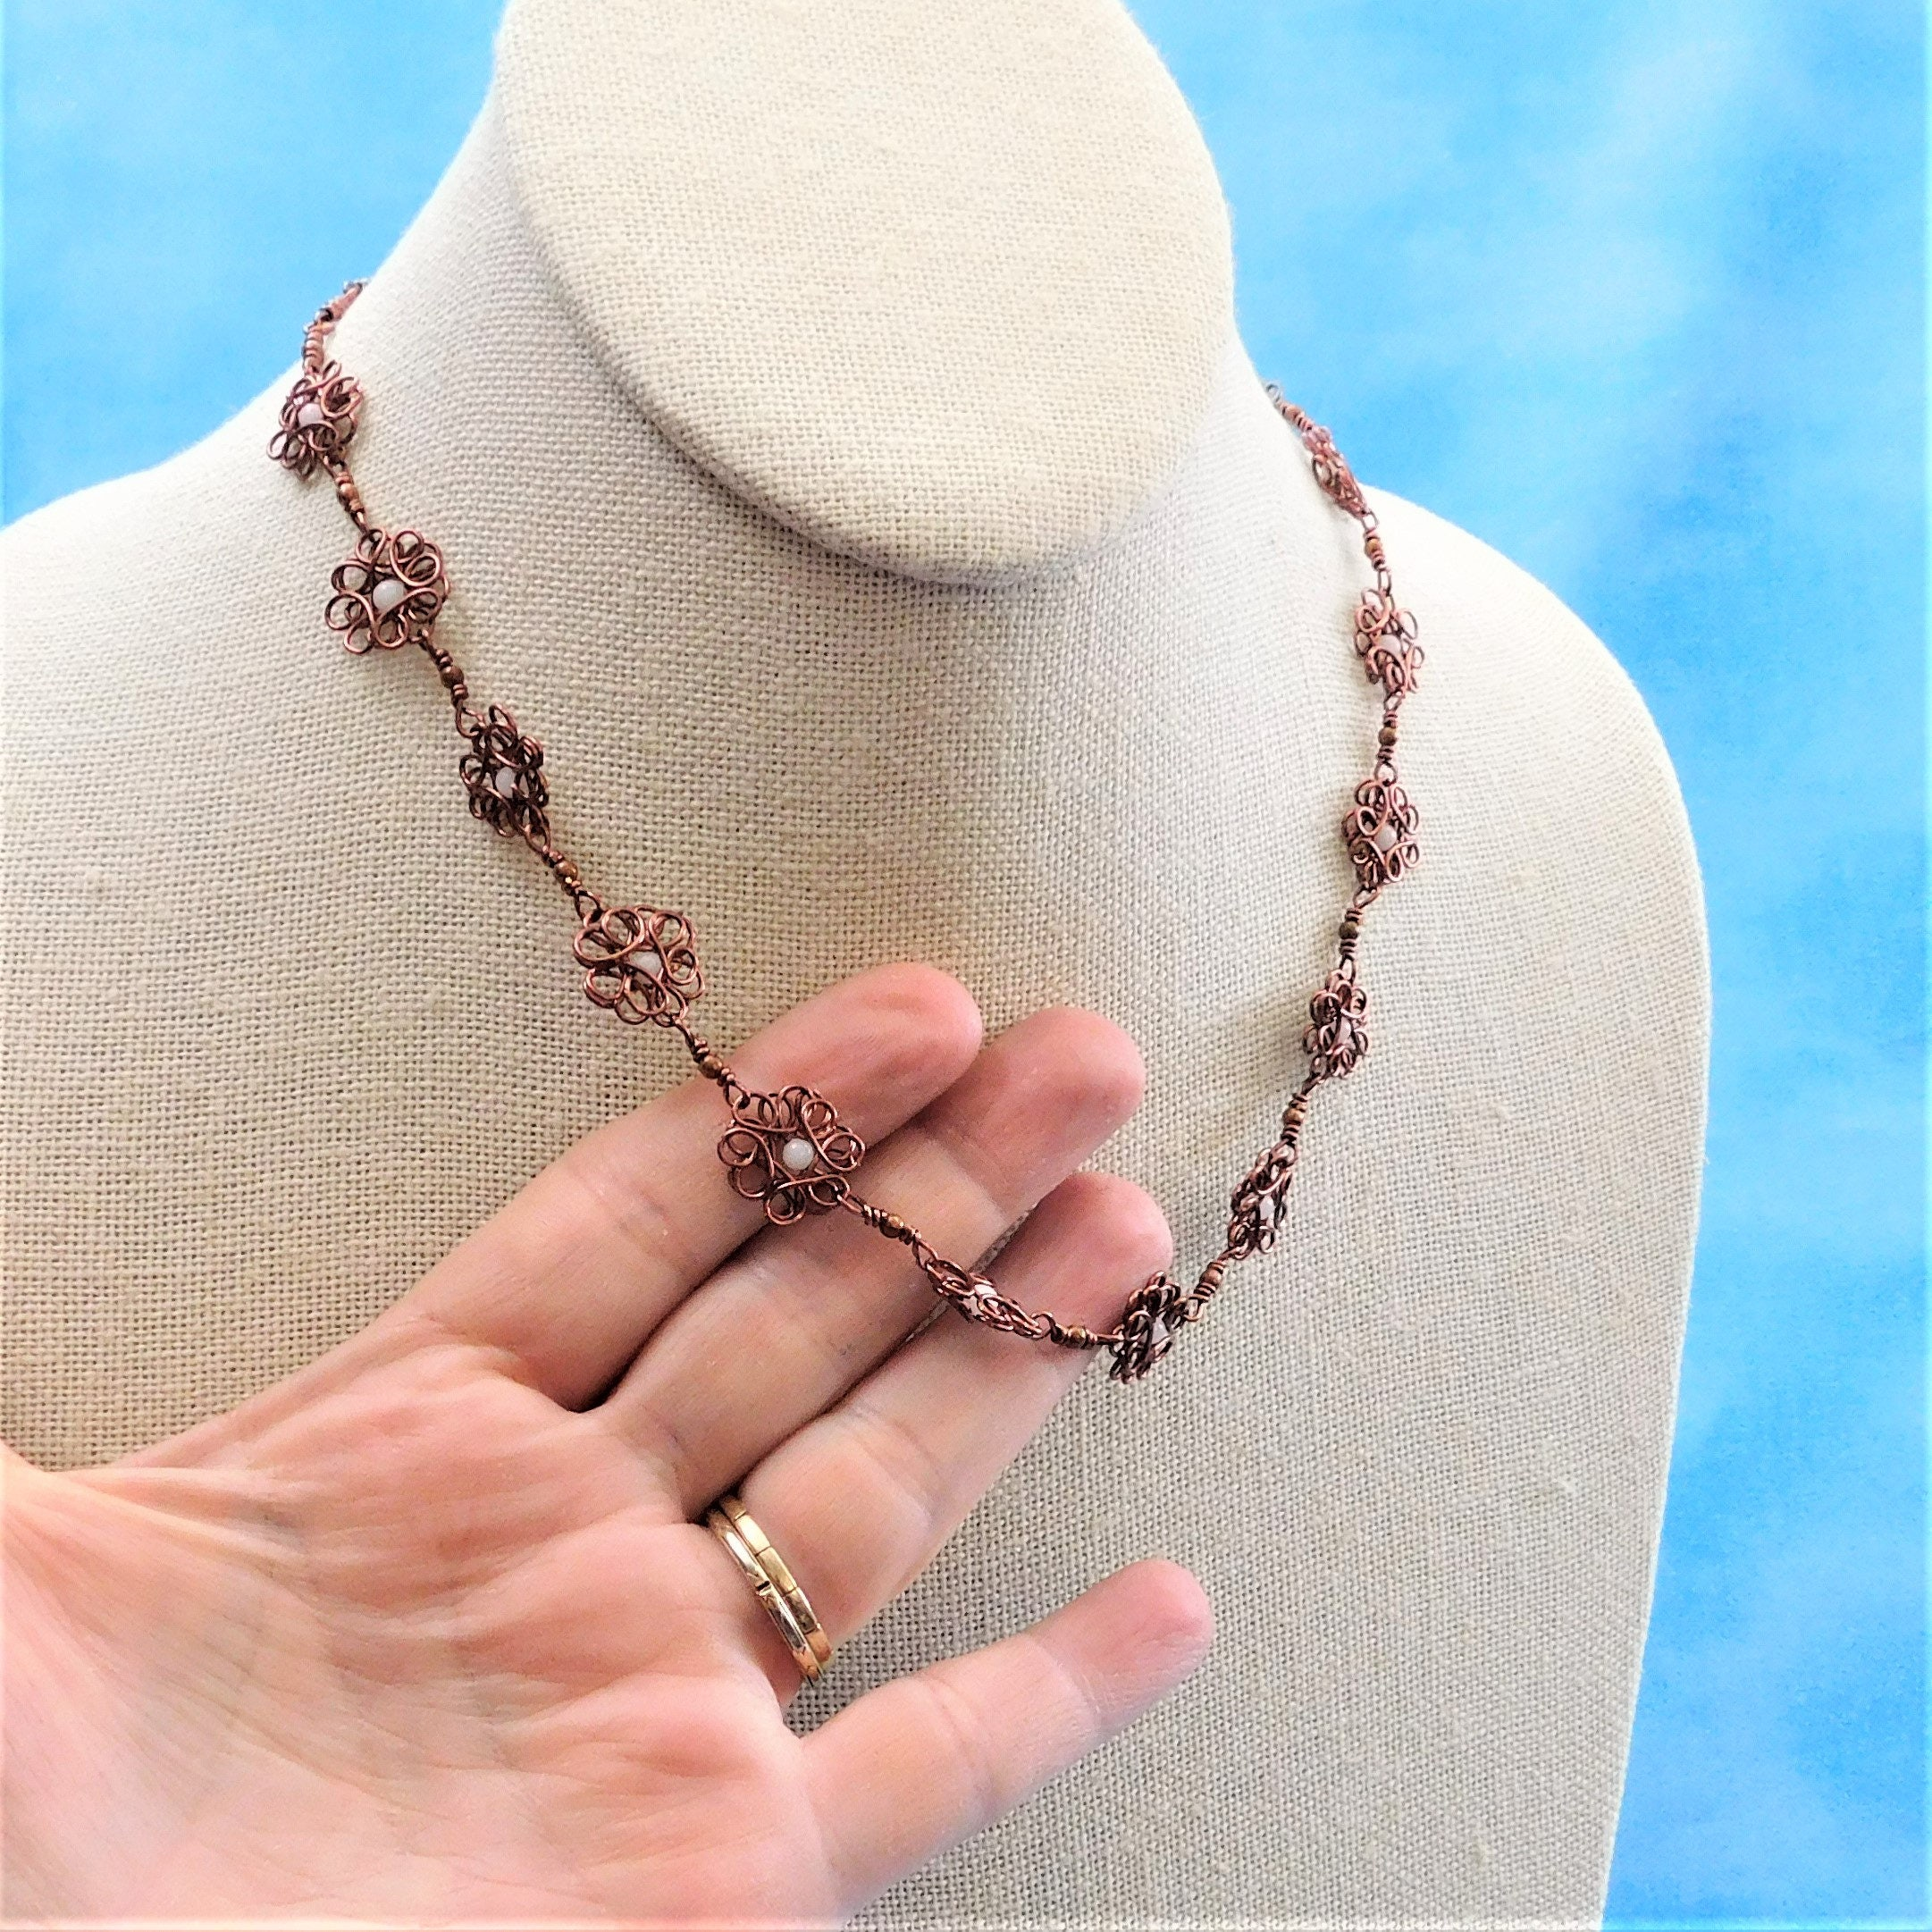 Copper Flower Necklace Unique Artisan Crafted Sculpted Wire